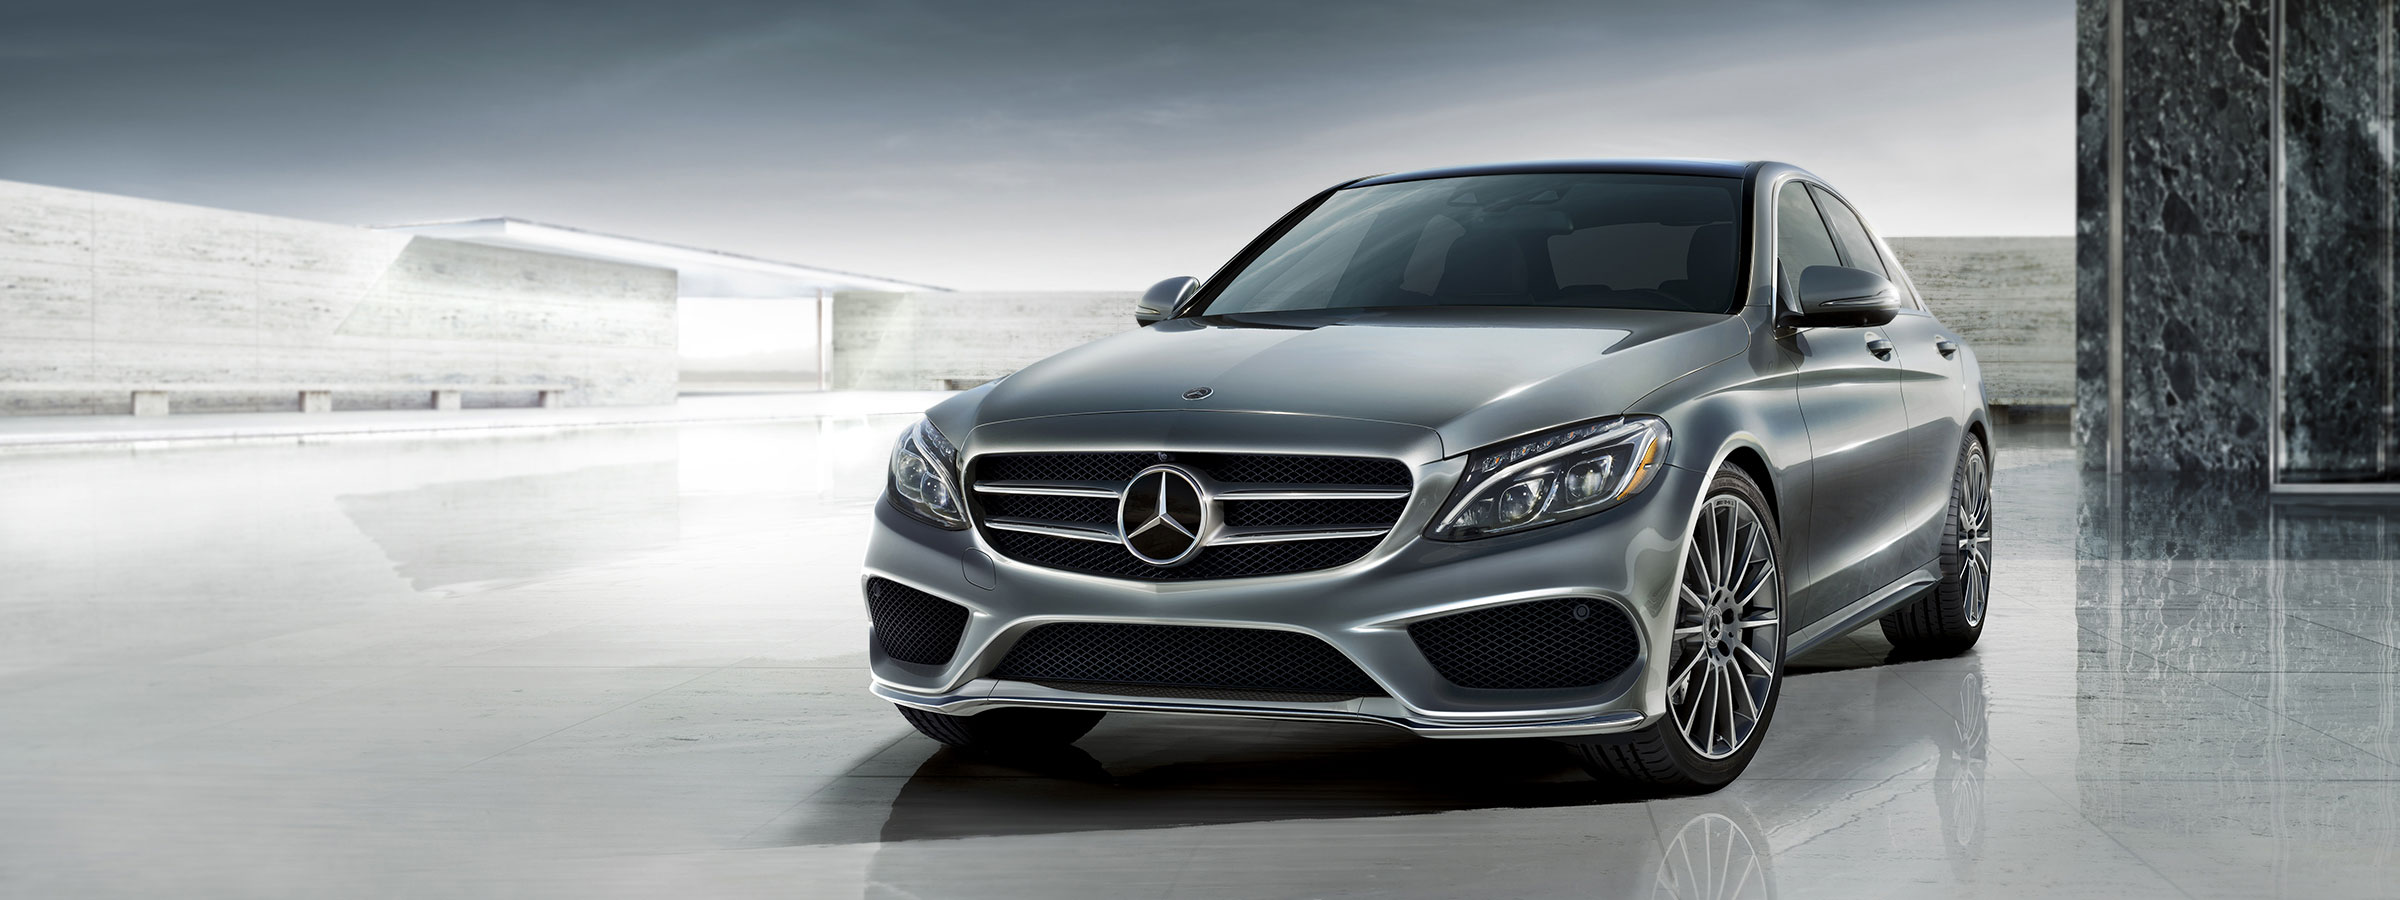 stmed vehicles net background lease deals benz wallpapers gla and mercedes class images